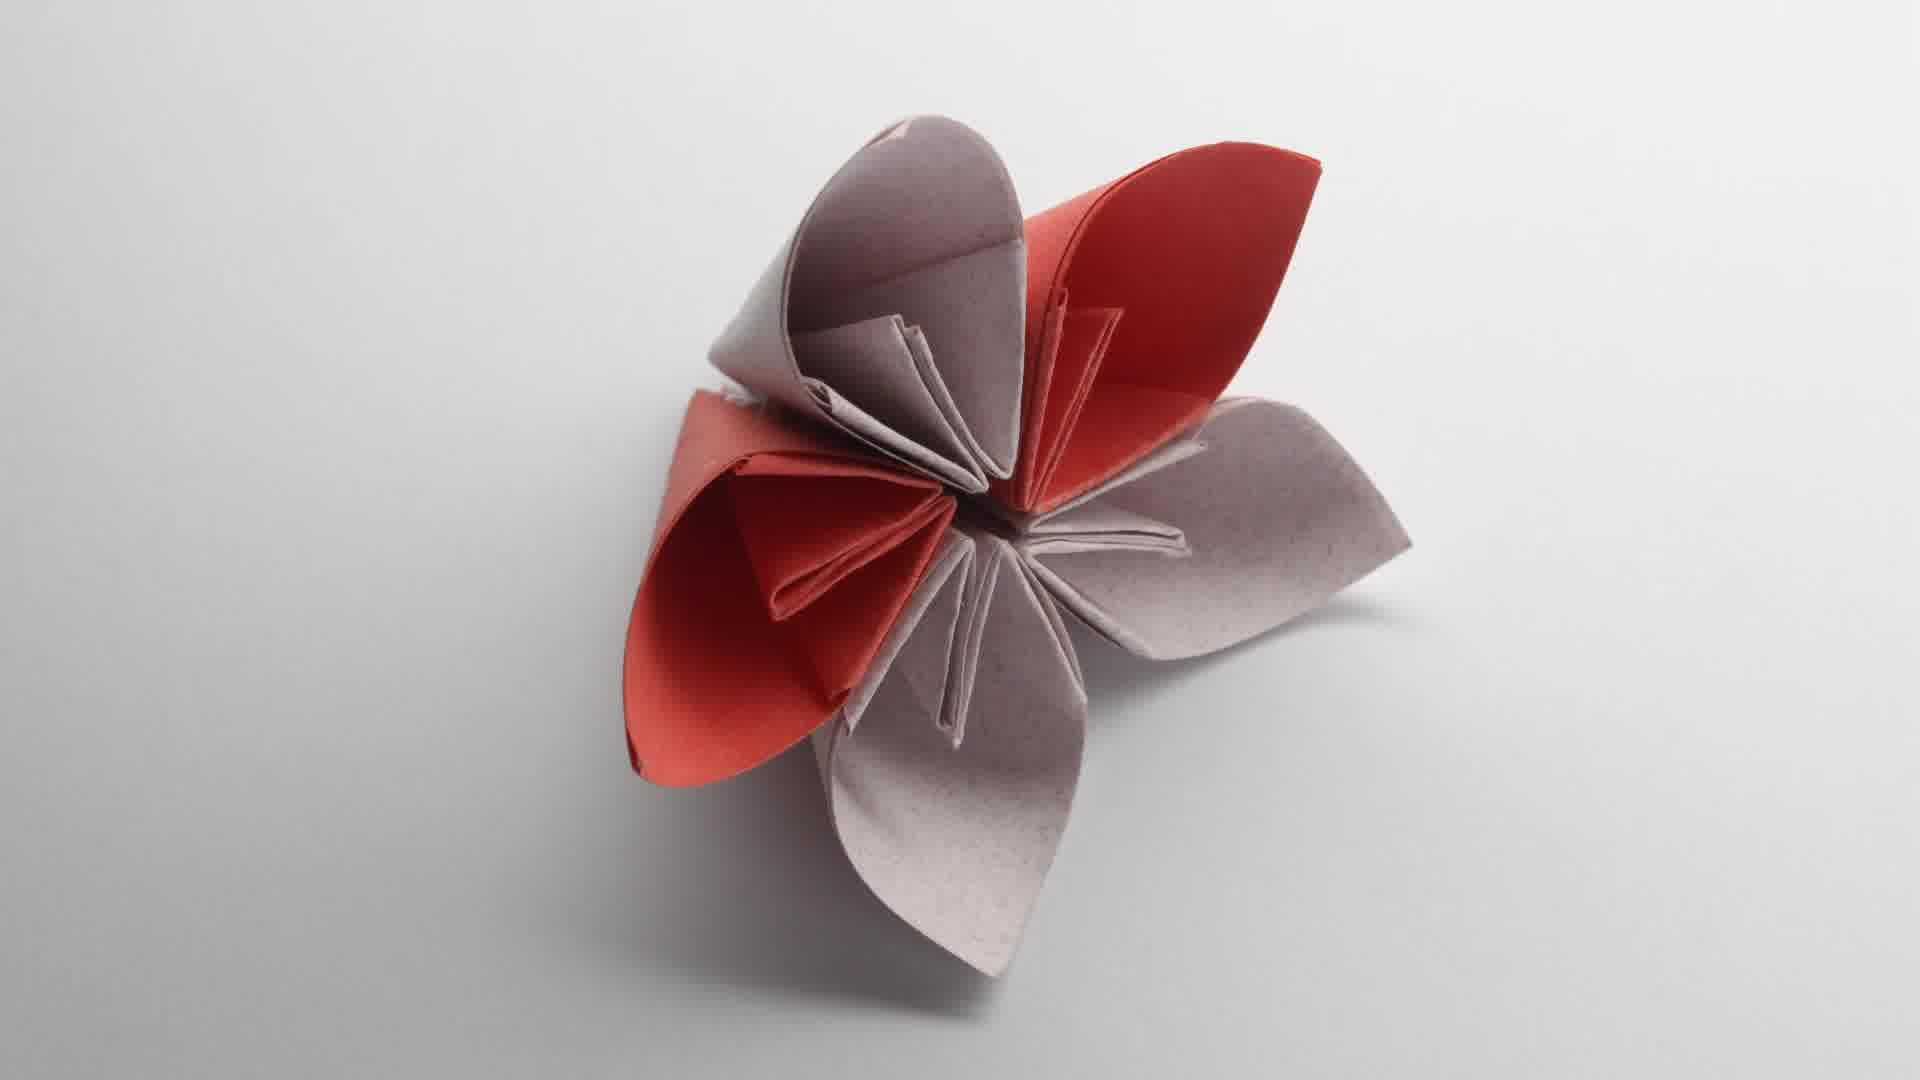 Easy Origami Flower Wallpaper High Definition High Quality Widescreen